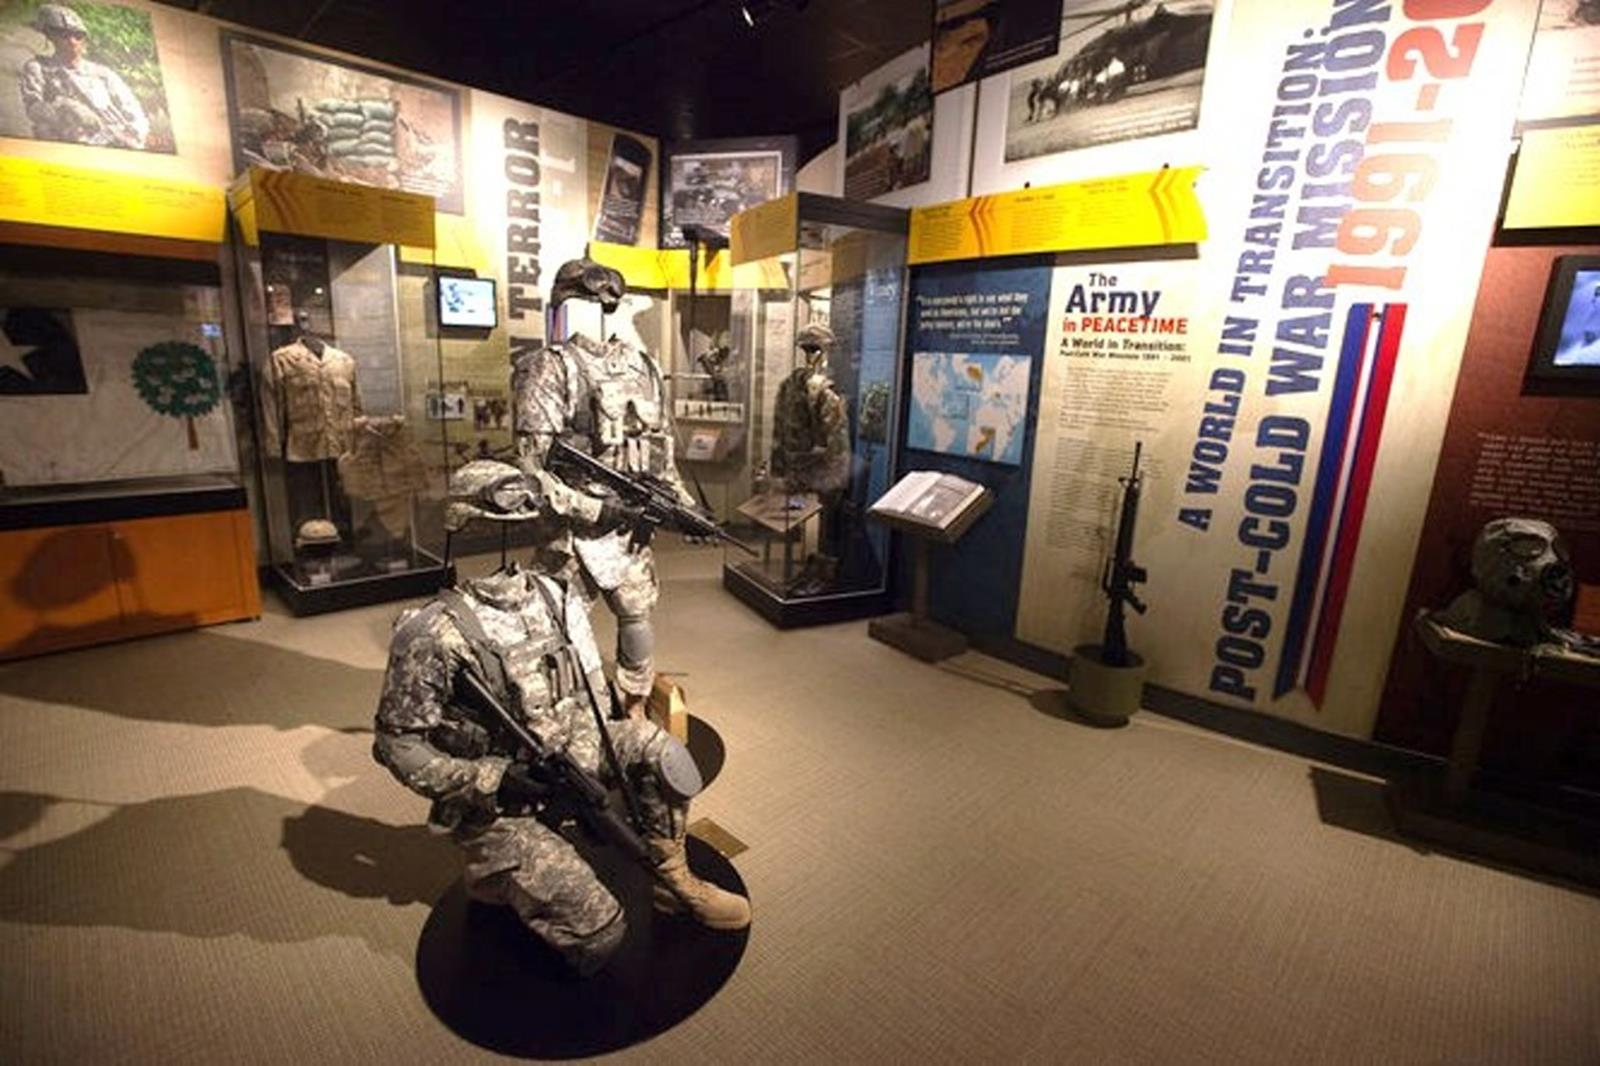 Army memorabilia at the Army Heritage Center. Credit: Army Heritage Center Foundation